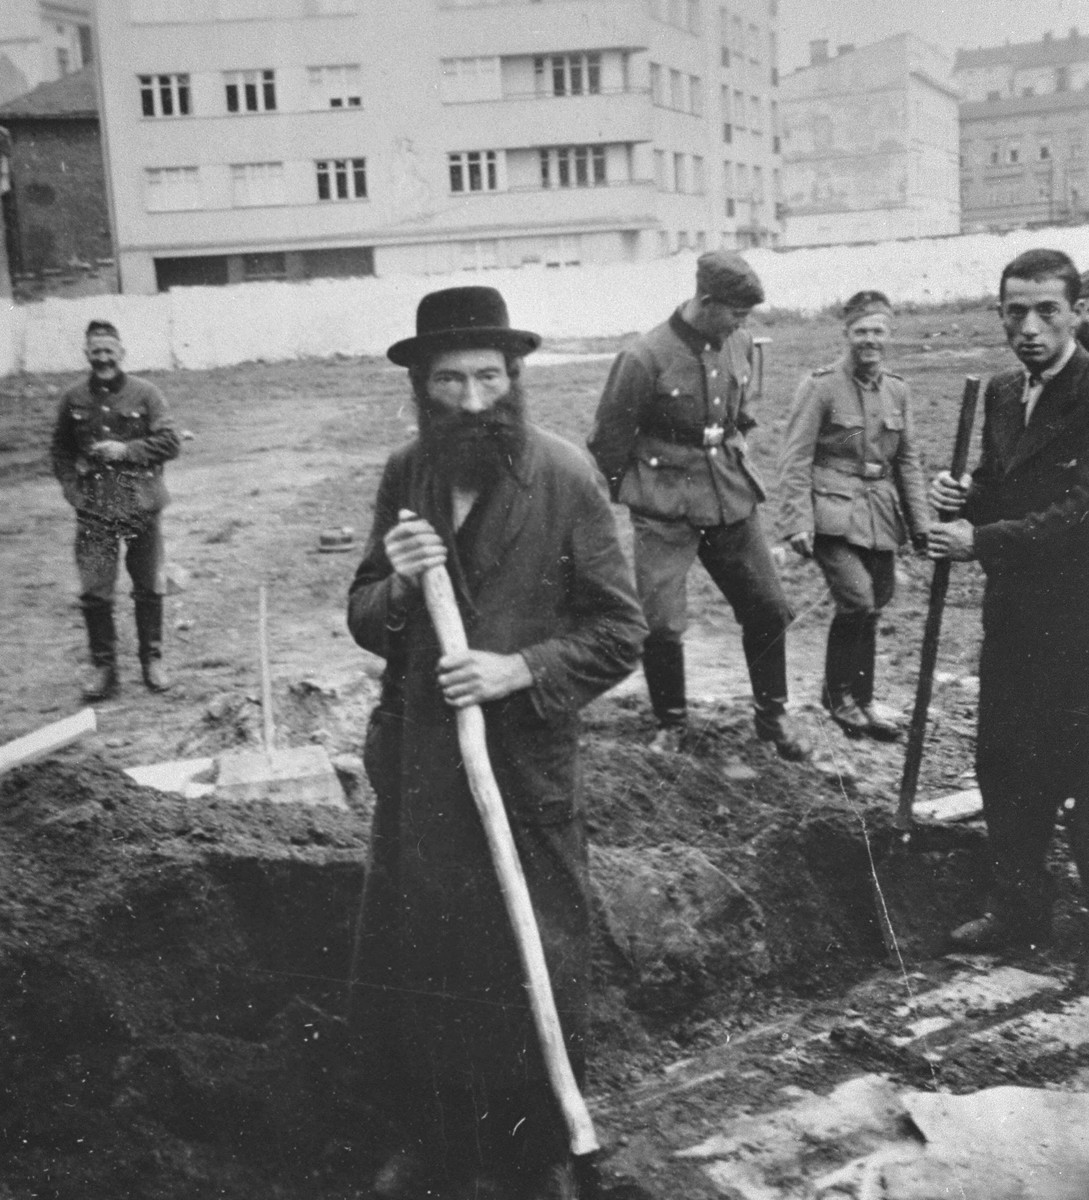 German soldiers amuse themselves while they force Jews to dig ditches in an empty lot in Krakow.